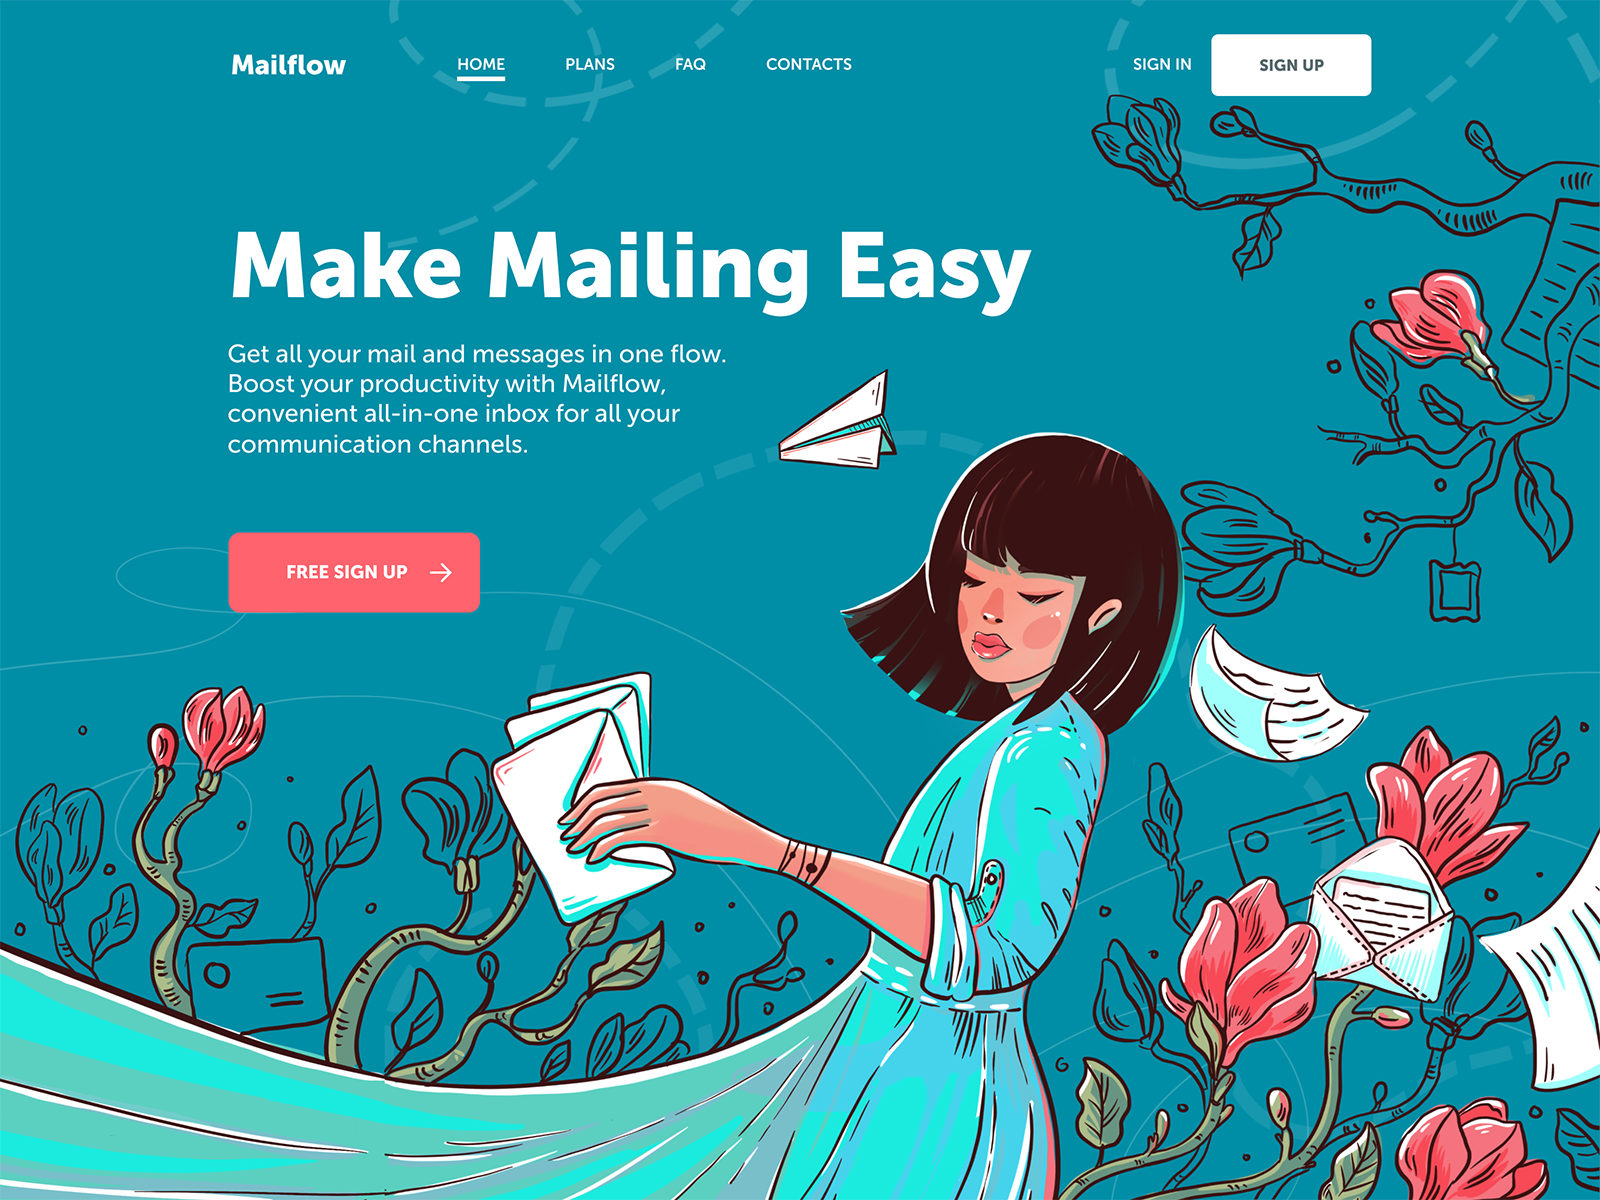 Web Design Inspiration 20 Examples Of Creative Landing Pages By Tubik Studio Ux Planet